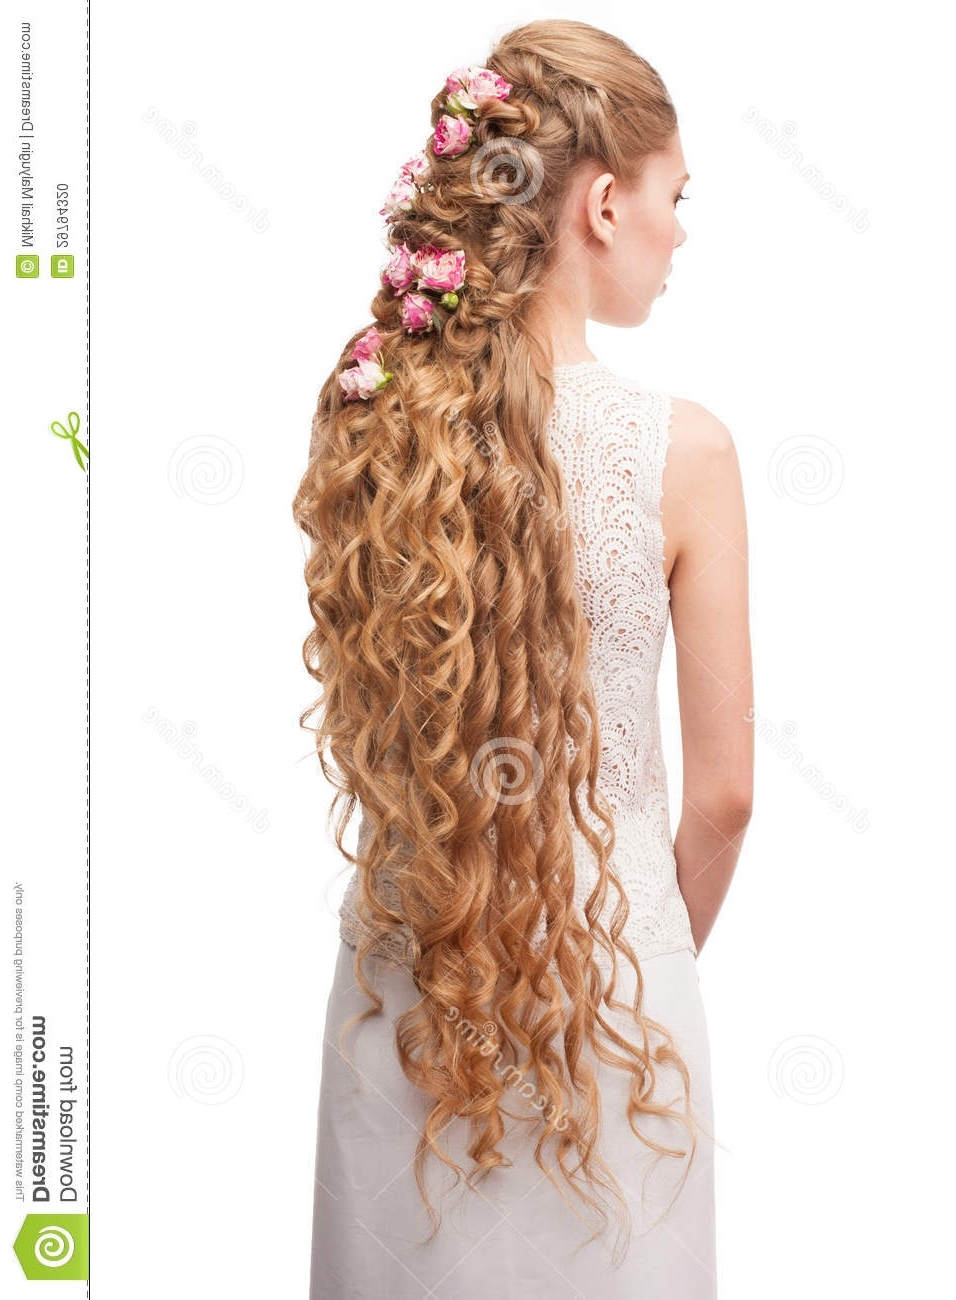 Widely Used Long Wedding Hairstyles With Flowers In Hair In Woman With Curly Long Hair Stock Photo (View 13 of 15)